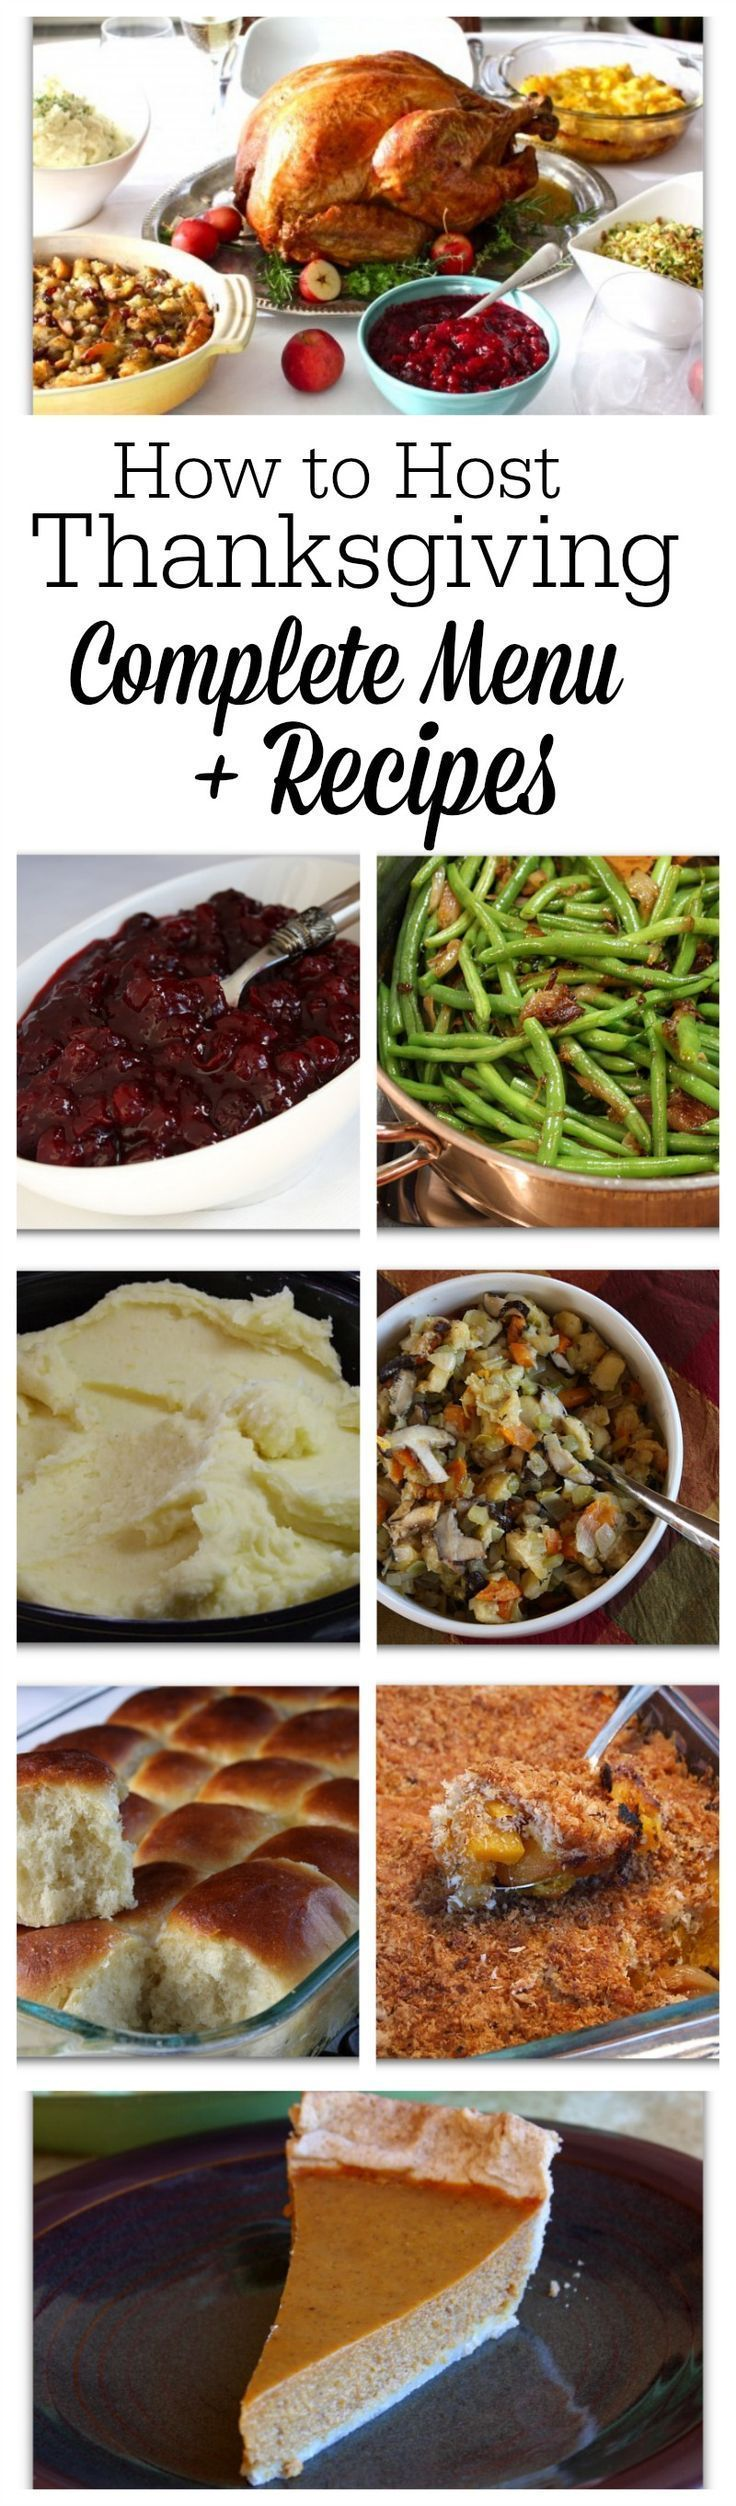 How to Host Thanksgiving Dinner- complete menu and recipes included here!